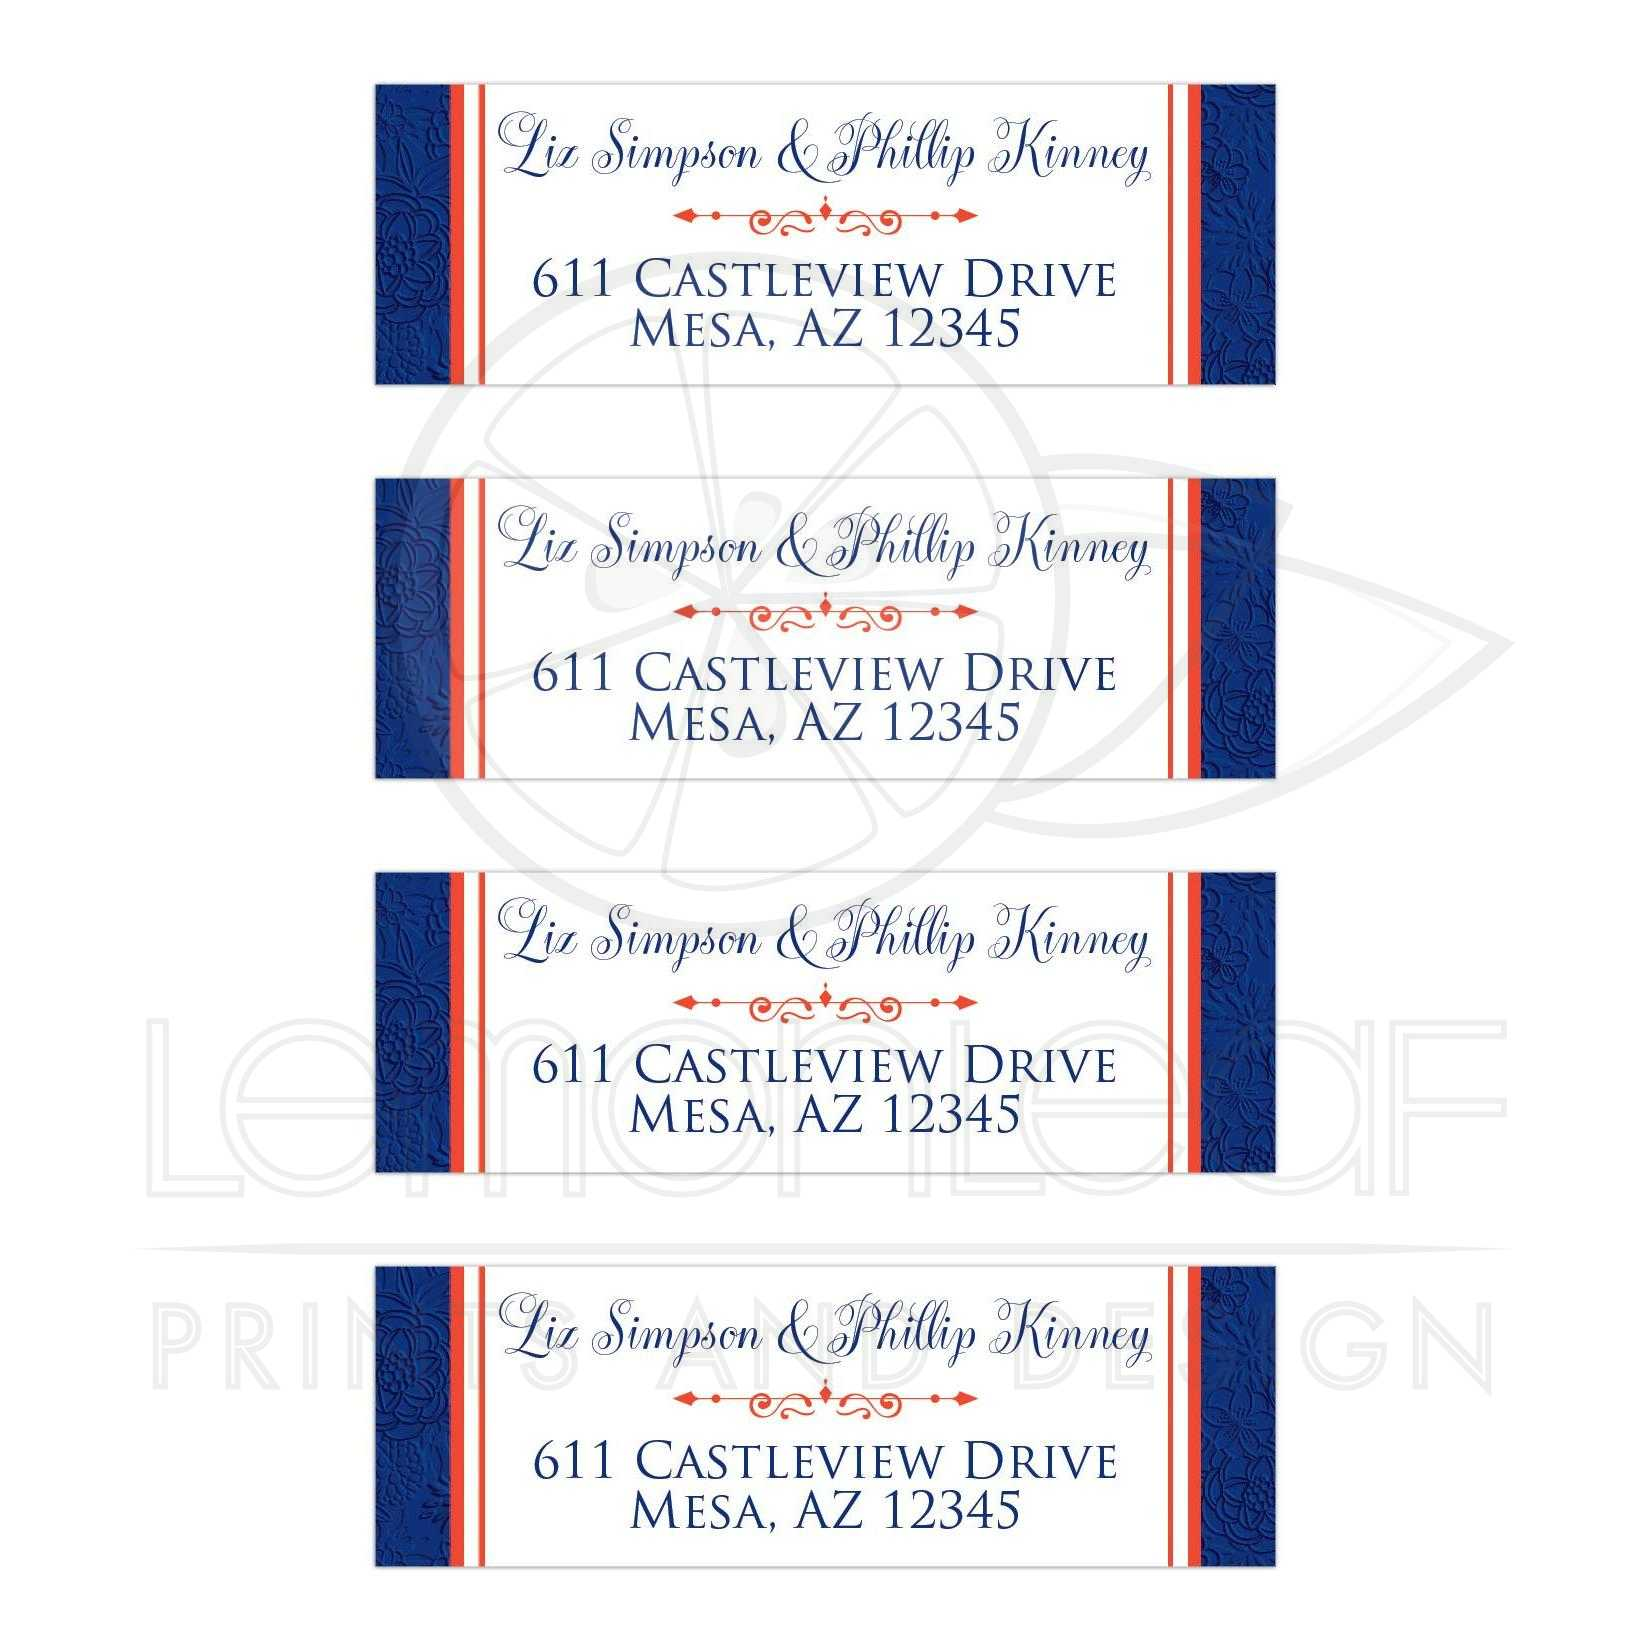 Personalized Royal Blue Orange And White Fl Wedding Return Address Mailing Labels With Decorative Scroll